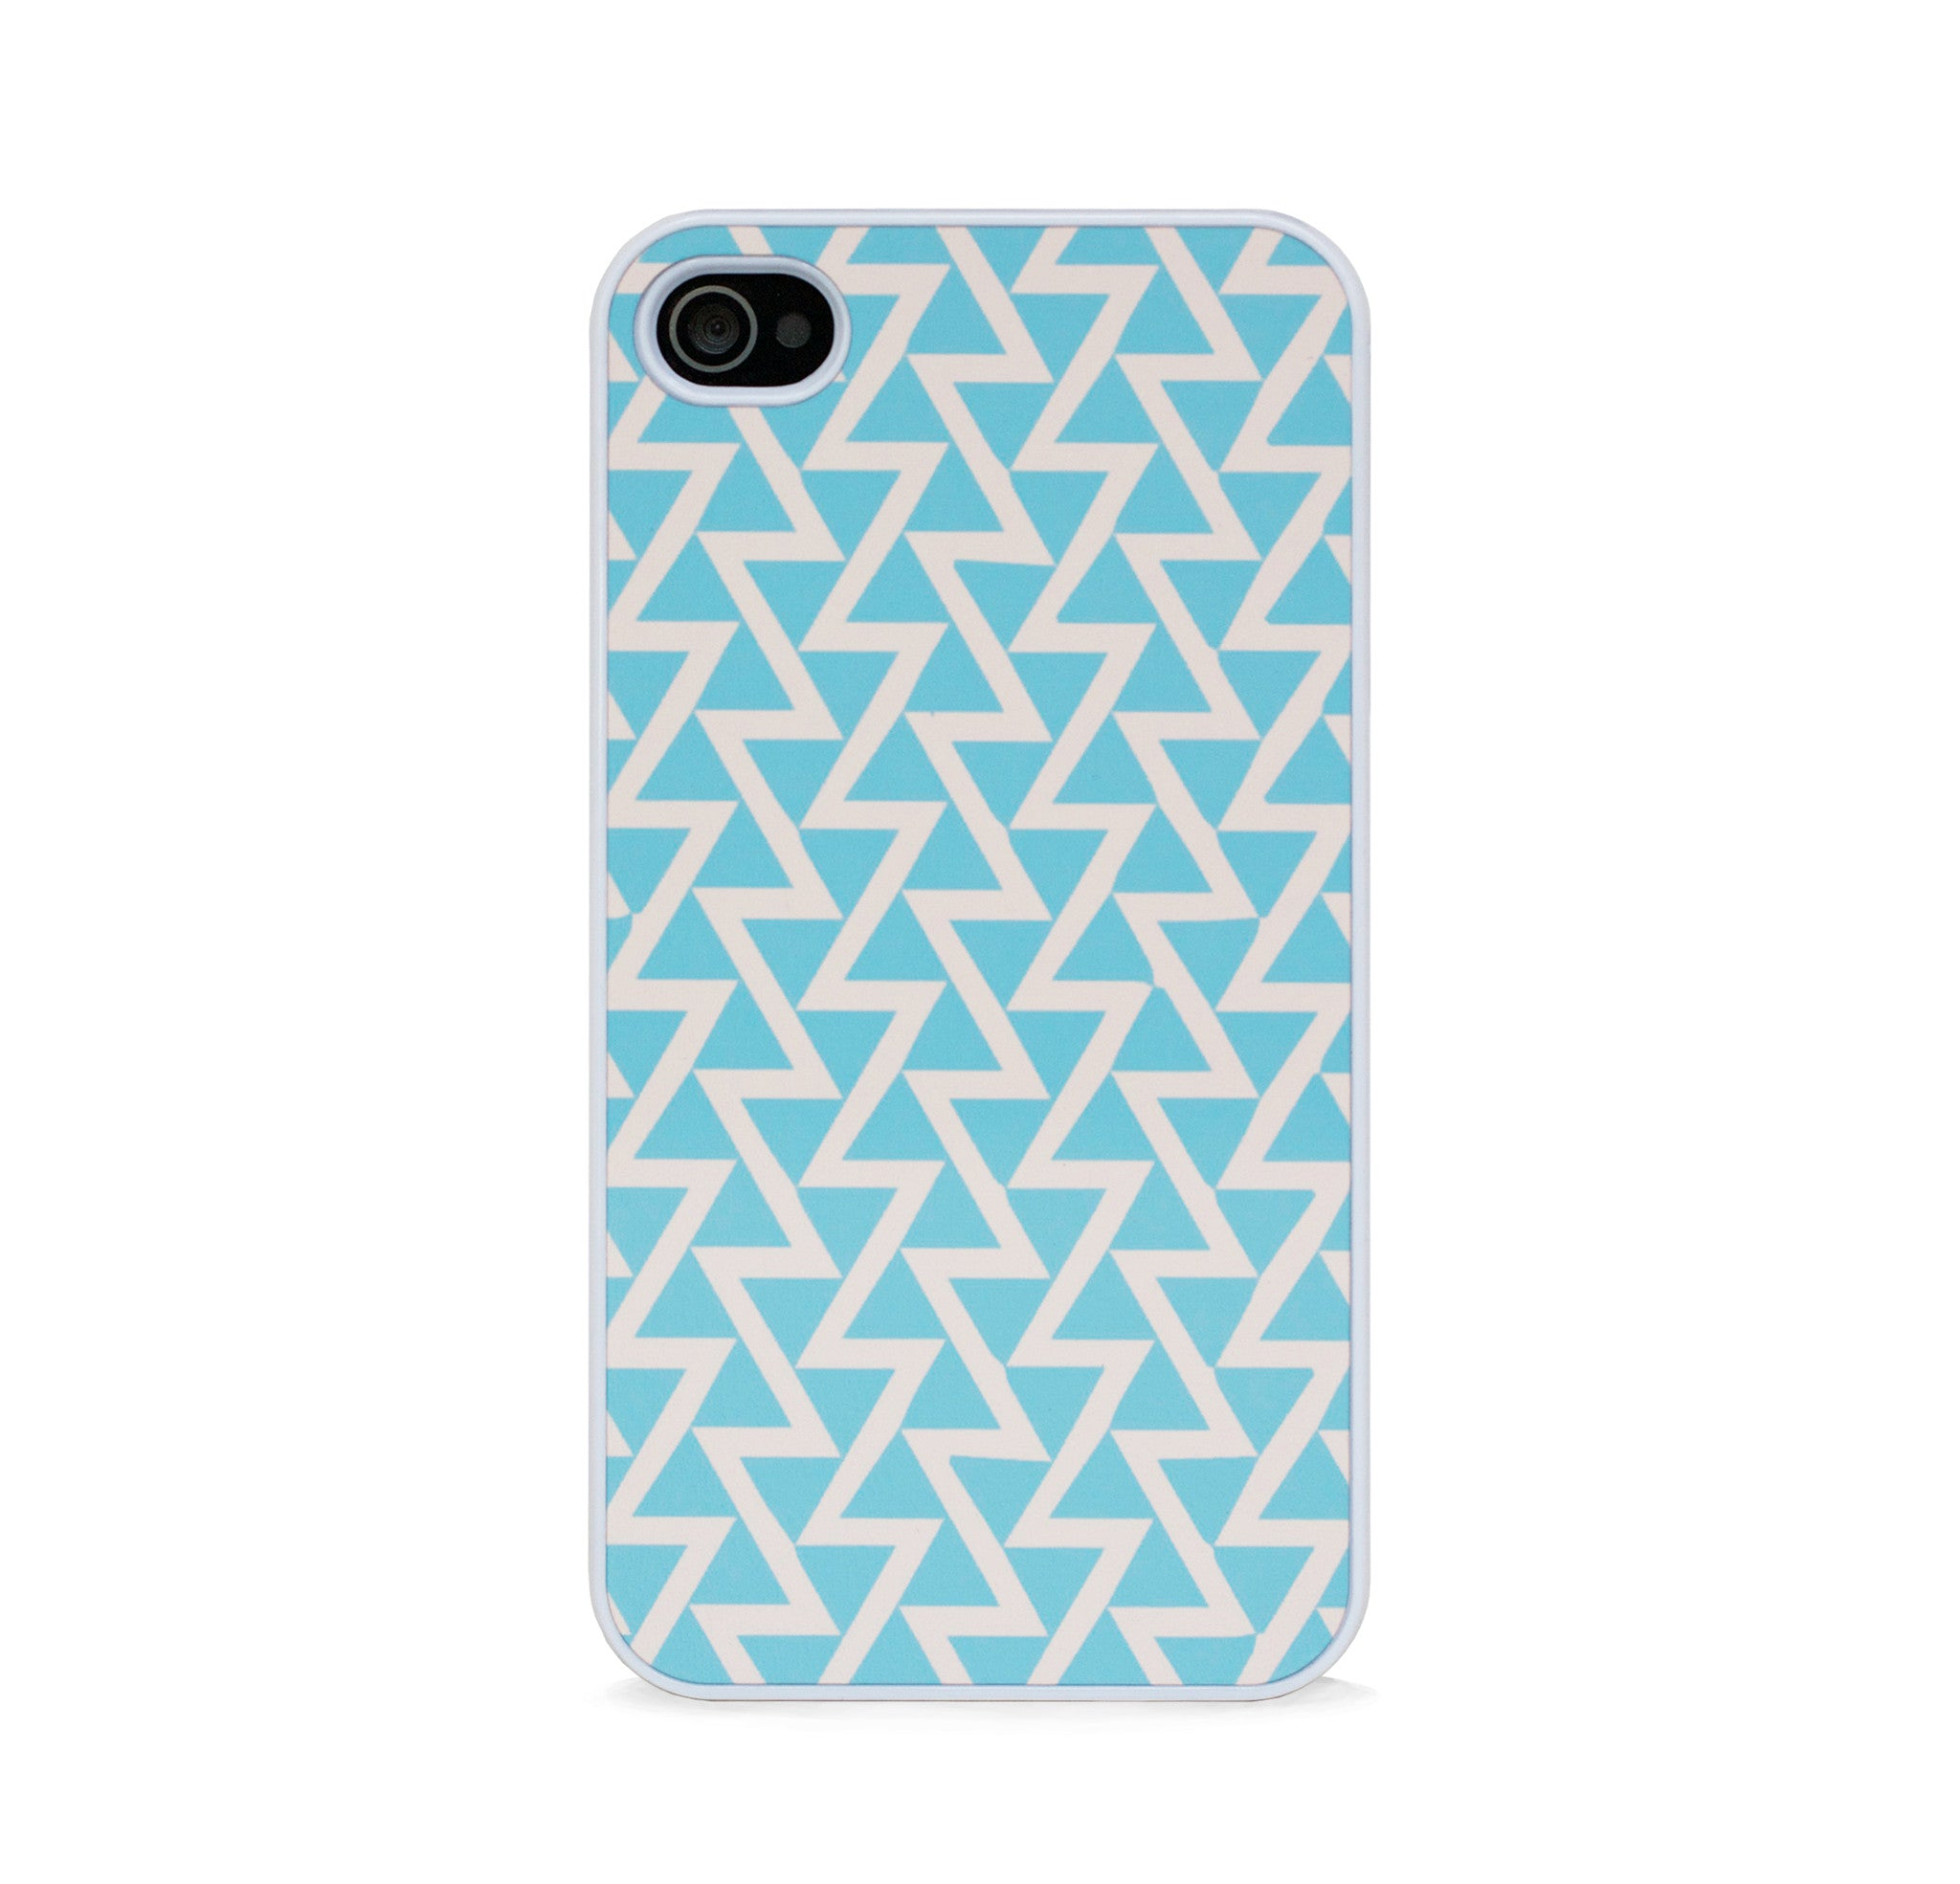 COLOR BLOCK TRI MINT FOR IPHONE 4/4S